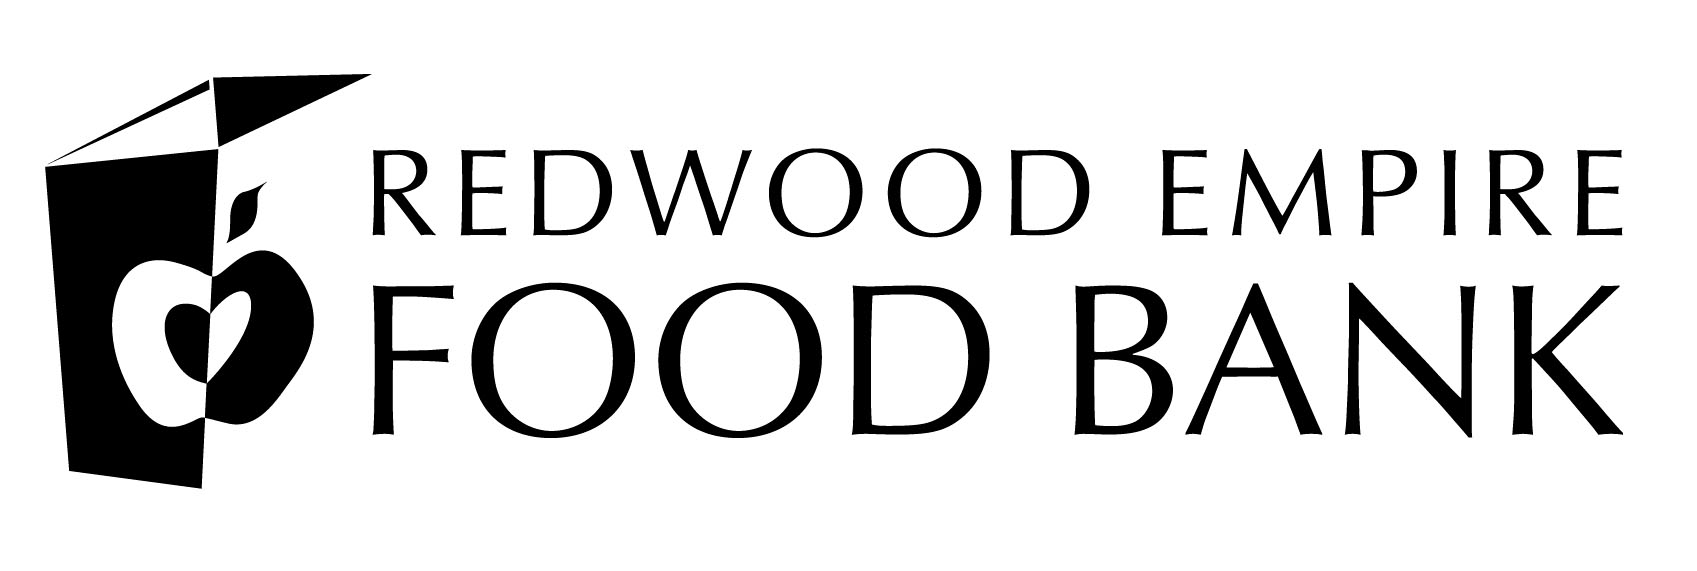 Thanks to our Community Partner of four years, the Redwood Empire Food Bank!